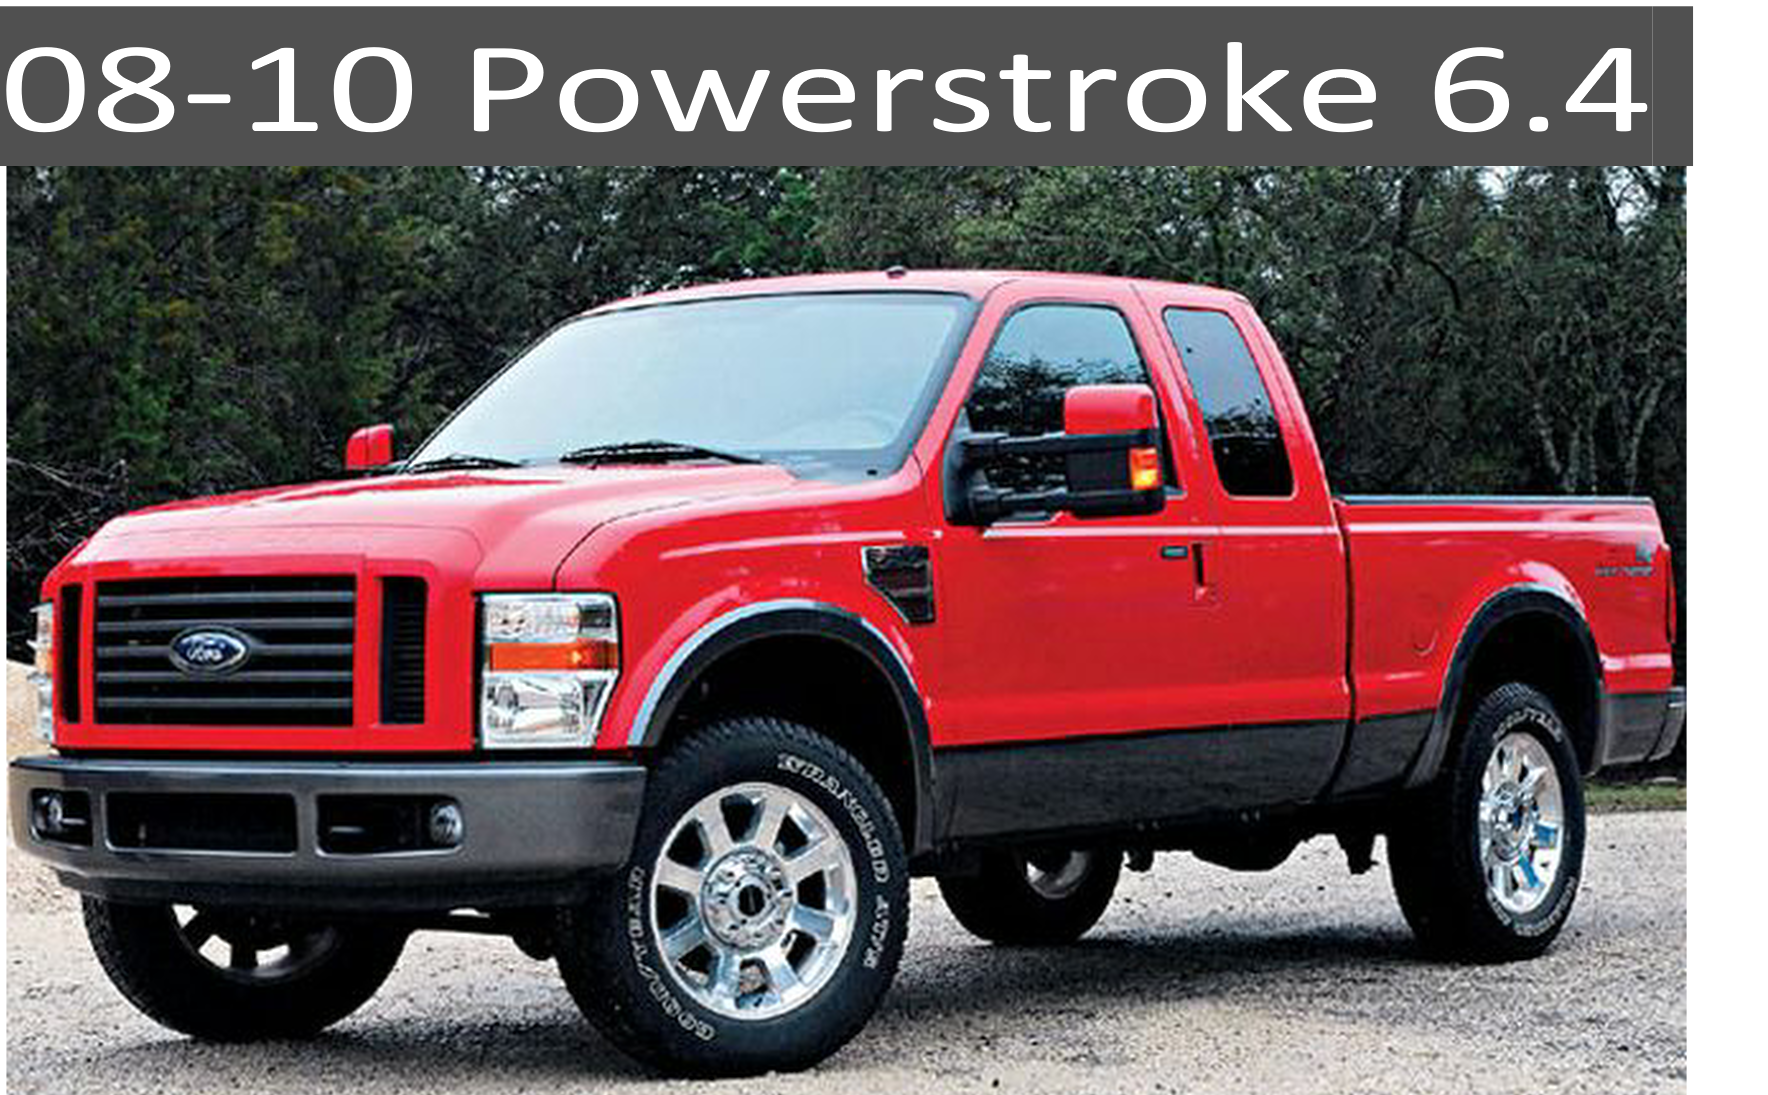 Ford Powerstroke Repair and Performance Parts Power Stroke